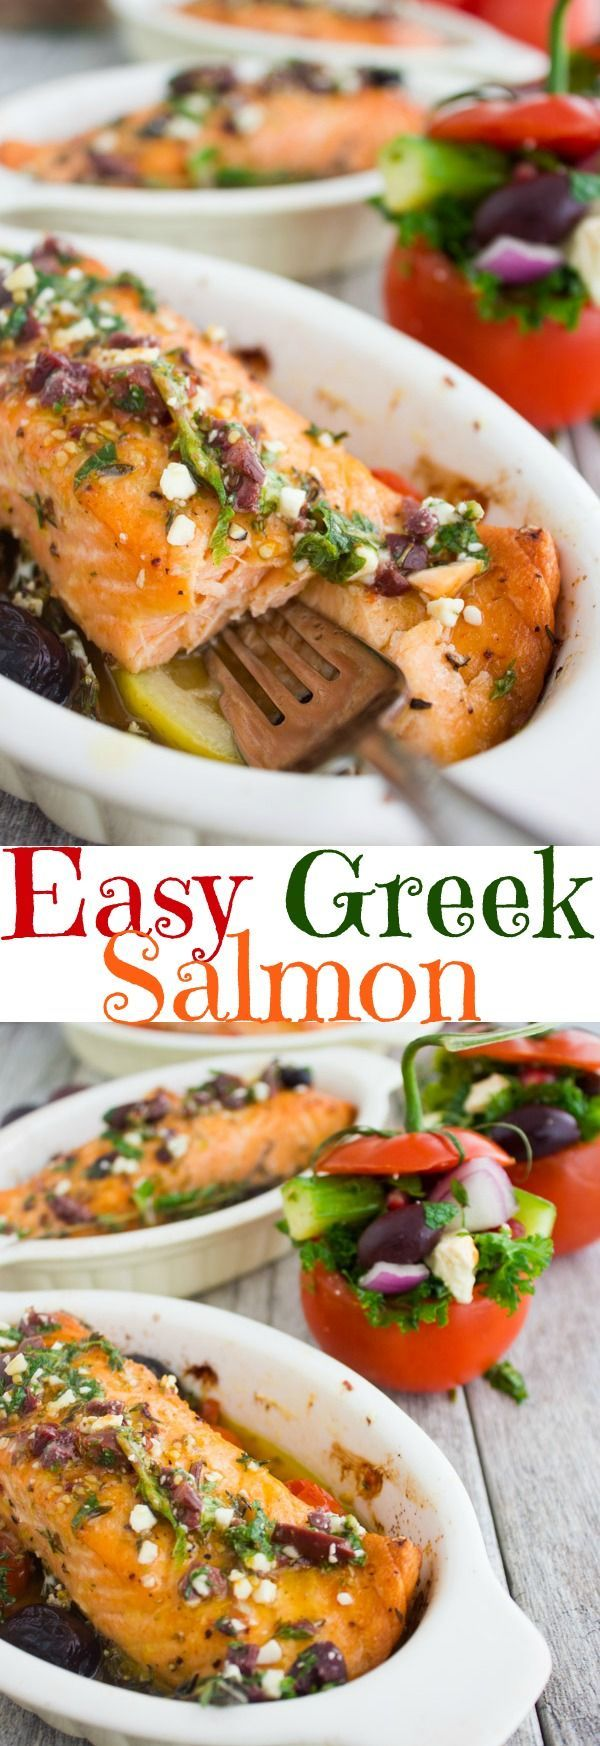 Best 25 greek recipes ideas on pinterest greek food recipes baked salmon with greek dressing forumfinder Gallery